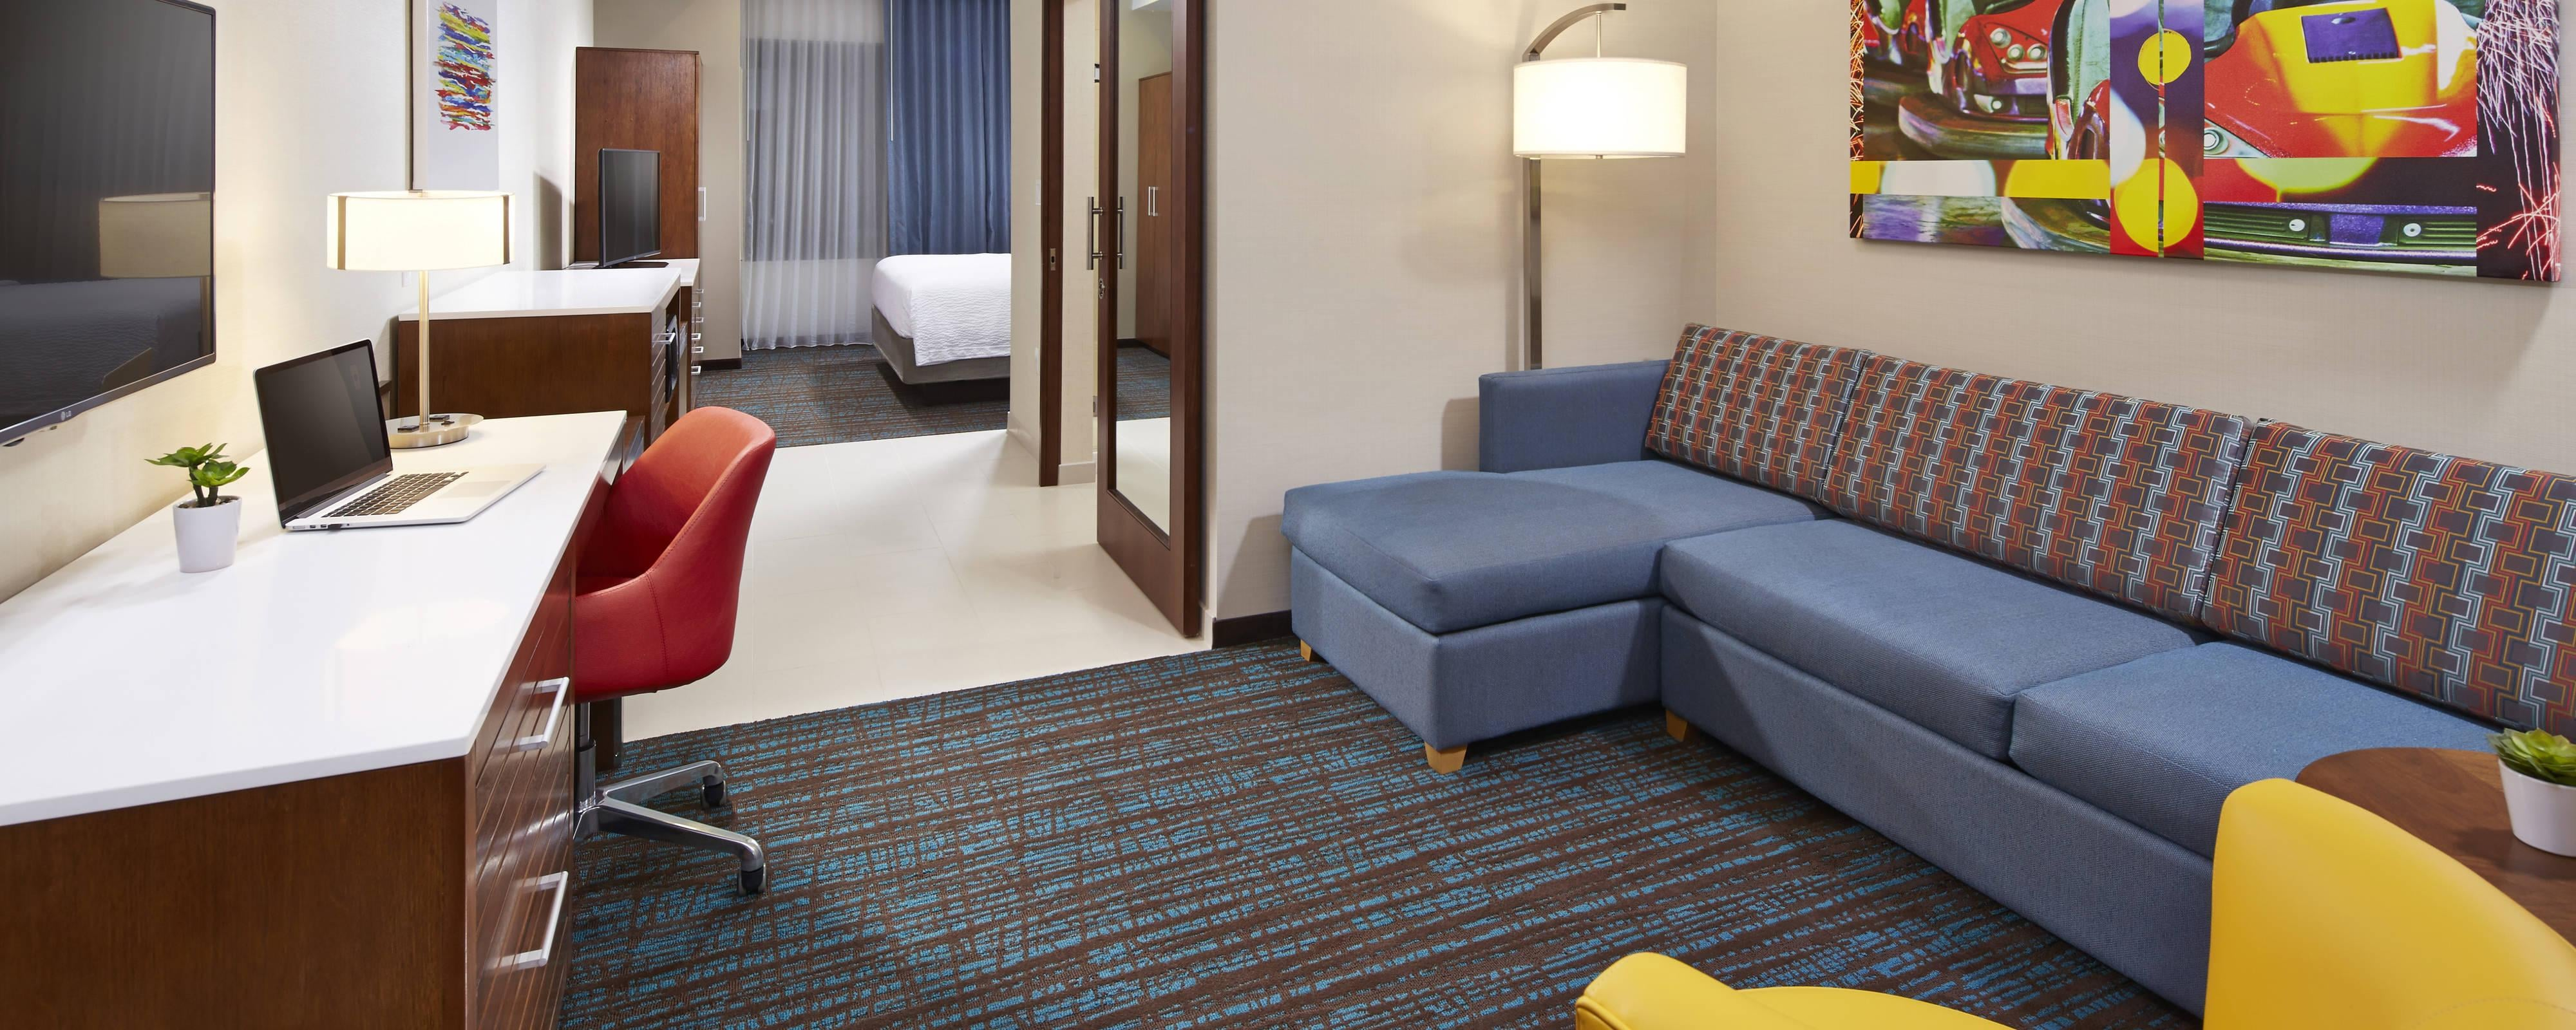 Springhill Suites at Anaheim Resort Studio King Suite